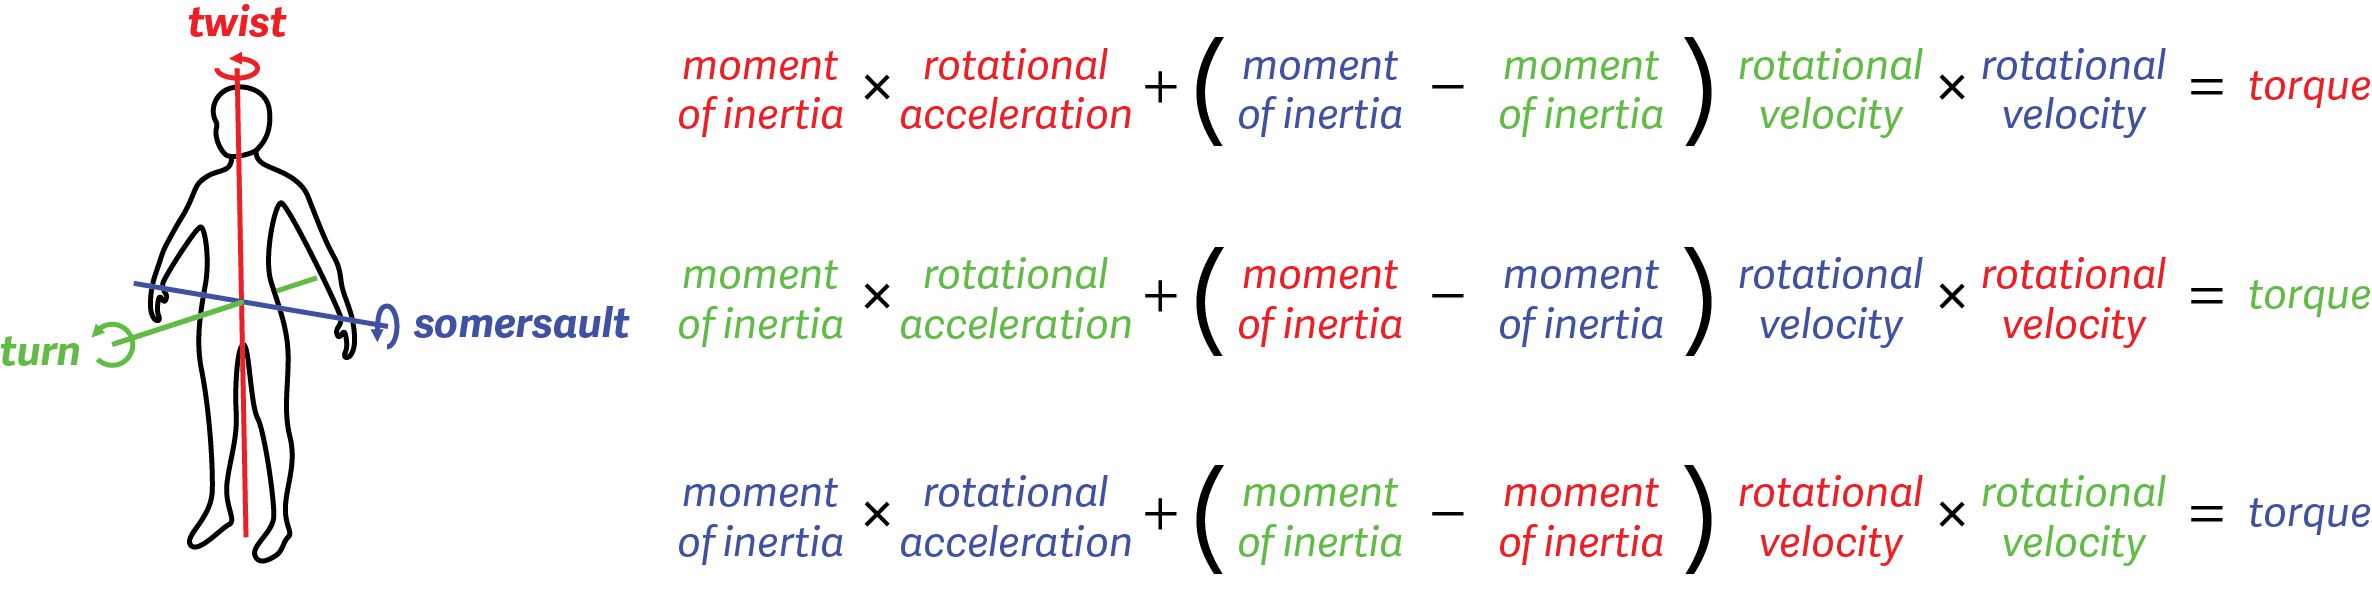 Euler's equations for rigid body dynamics show the (complex) relationship between how Simone Biles positions her body and how she flips, twists and turns.